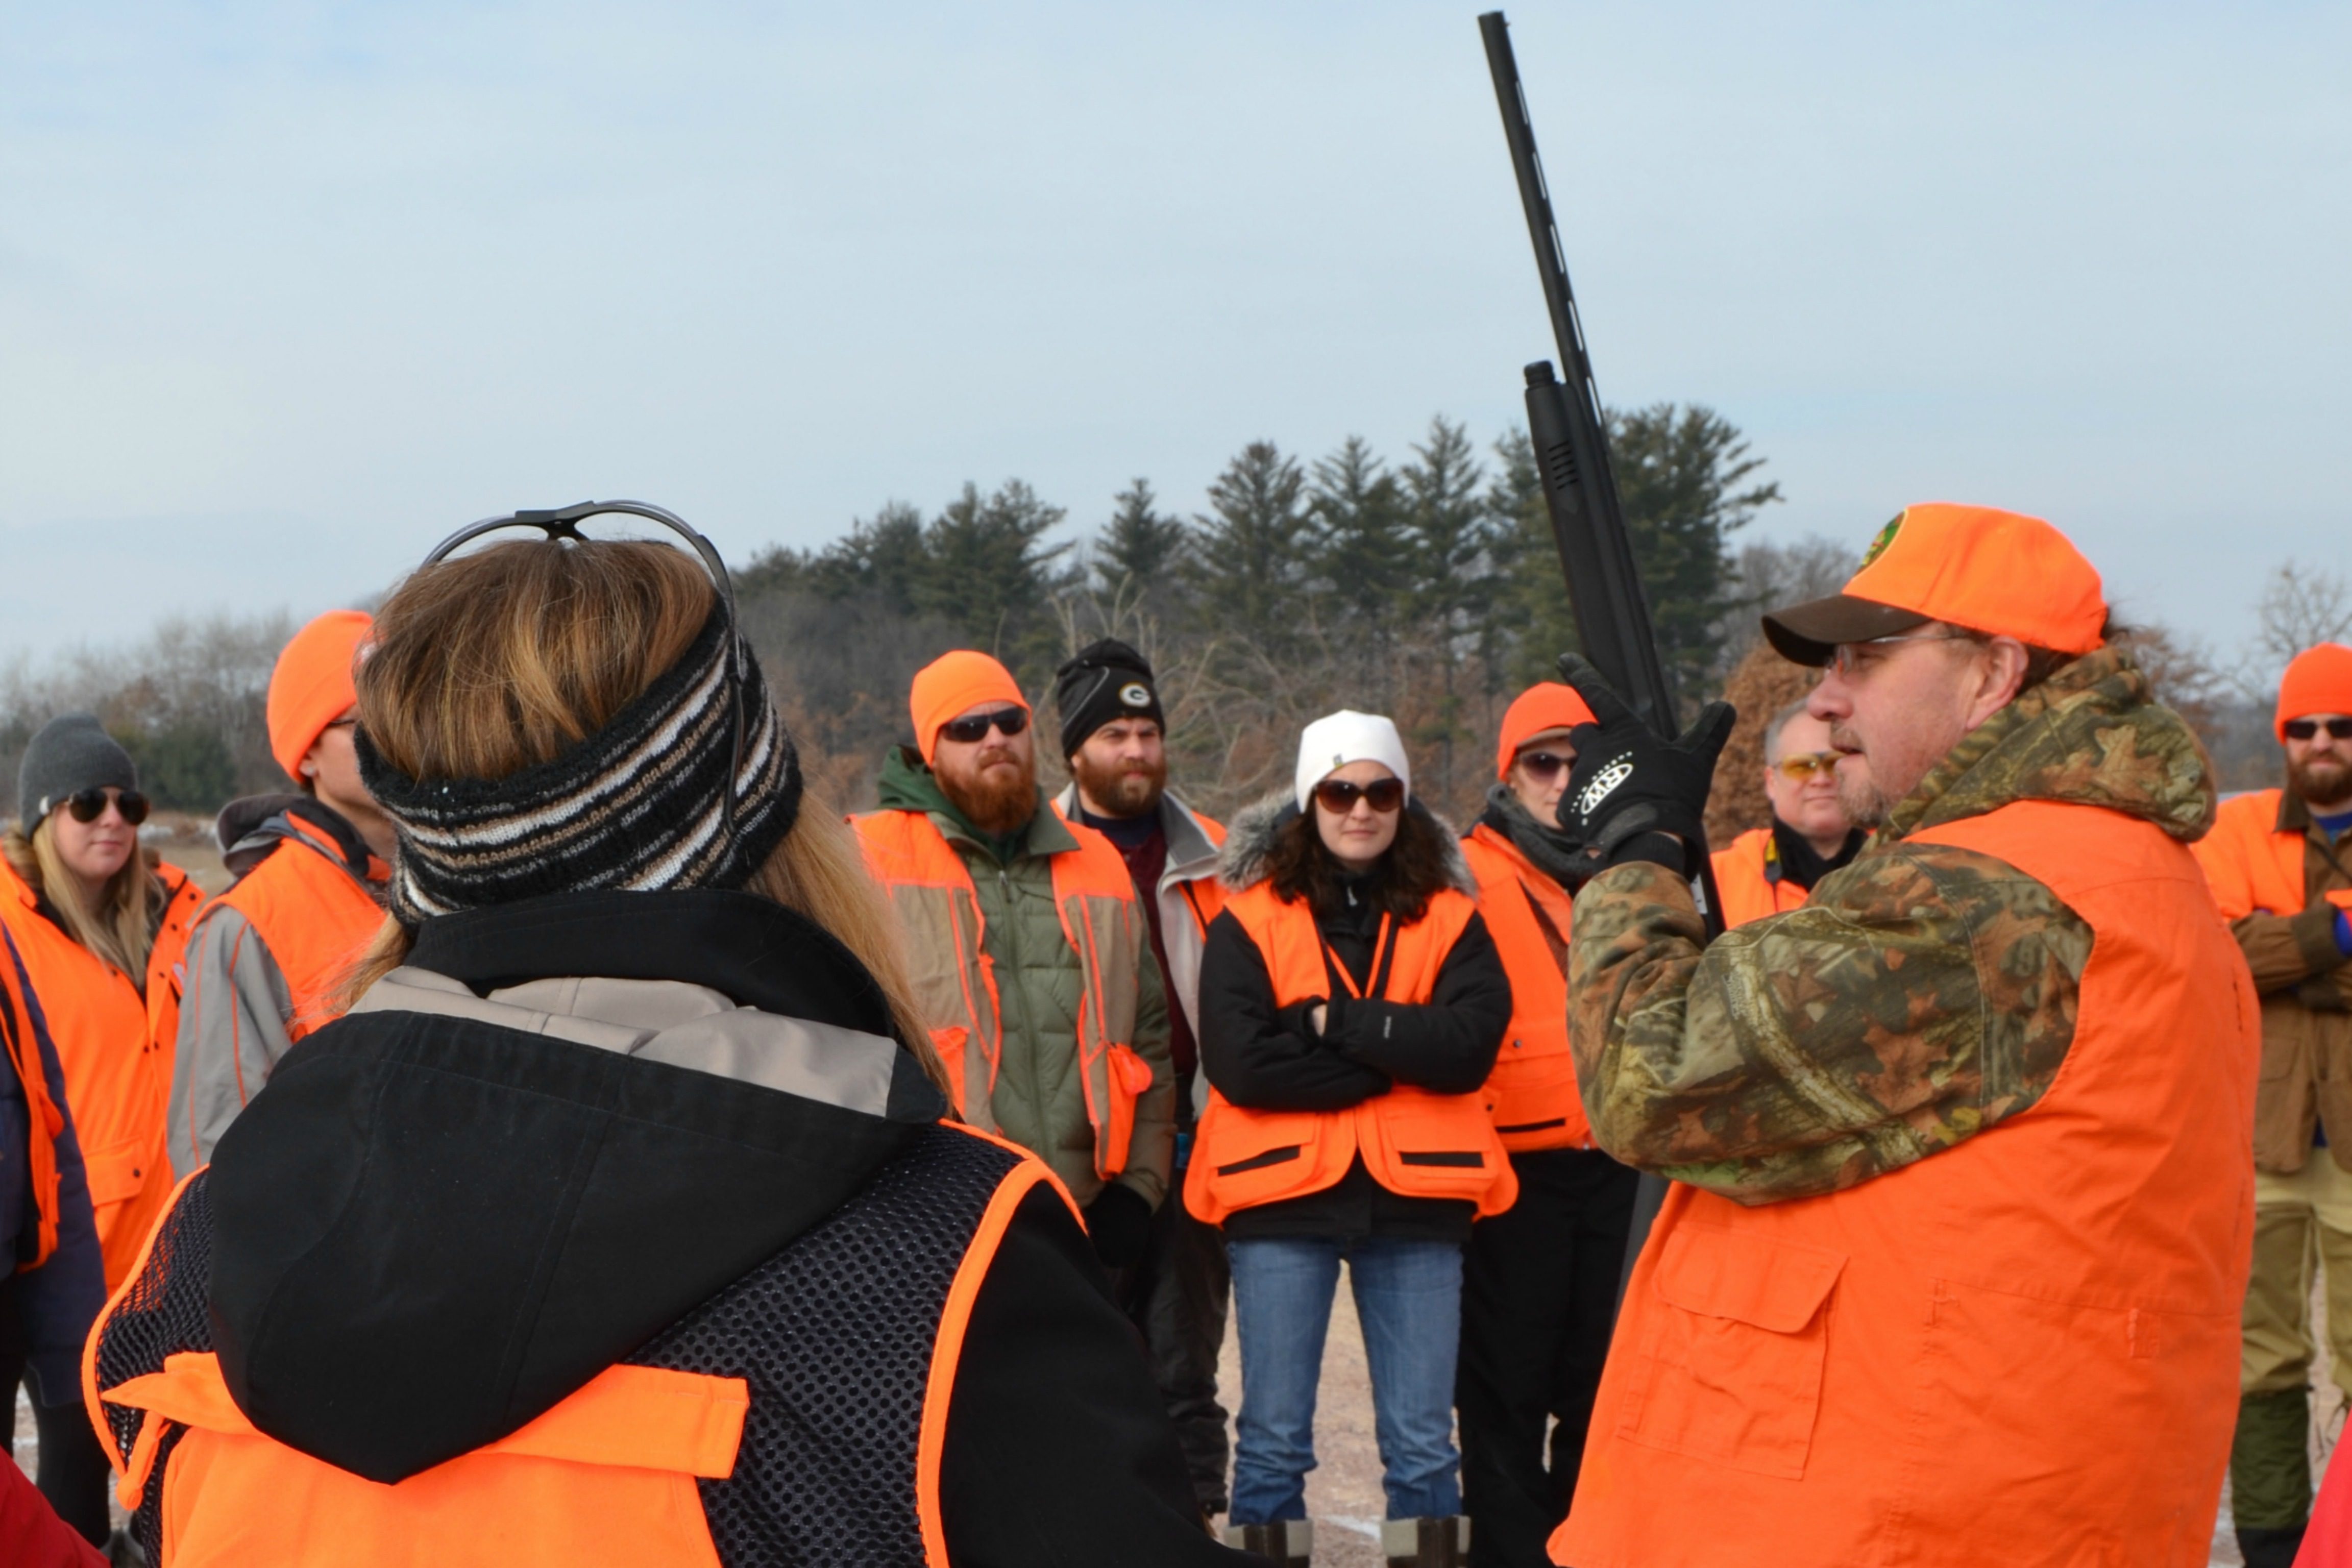 UW-Madison sponsored a hunting event in Baraboo in conjunction with a massive open online course.